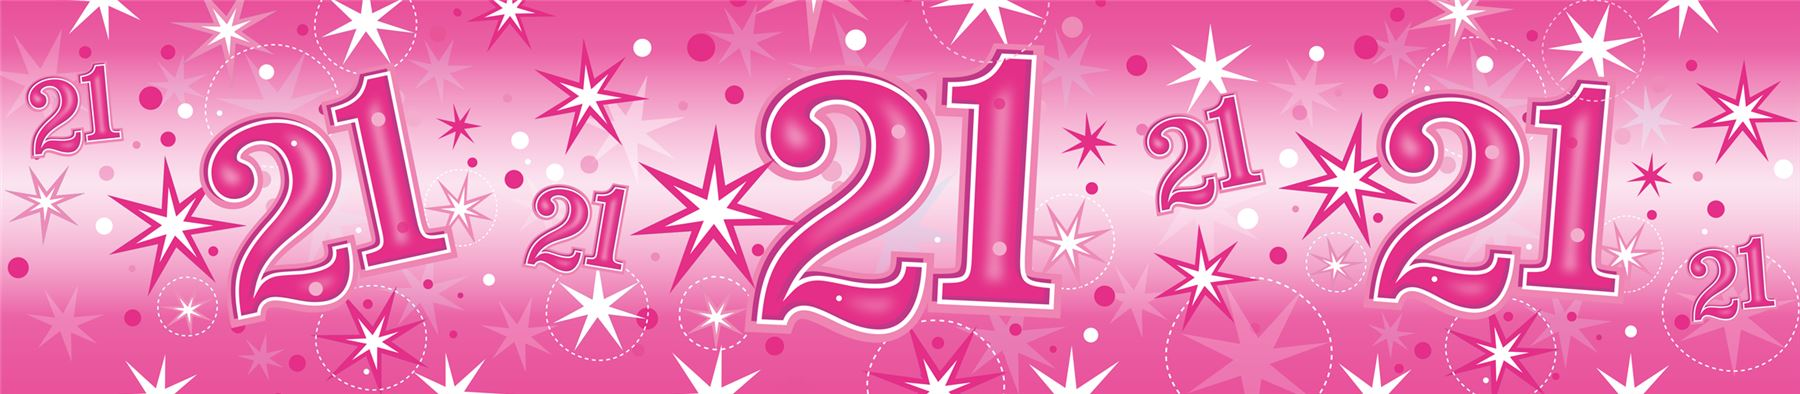 21st birthday banners and balloons ; 311c472a-c9c3-4f9a-8333-7e29c2542973